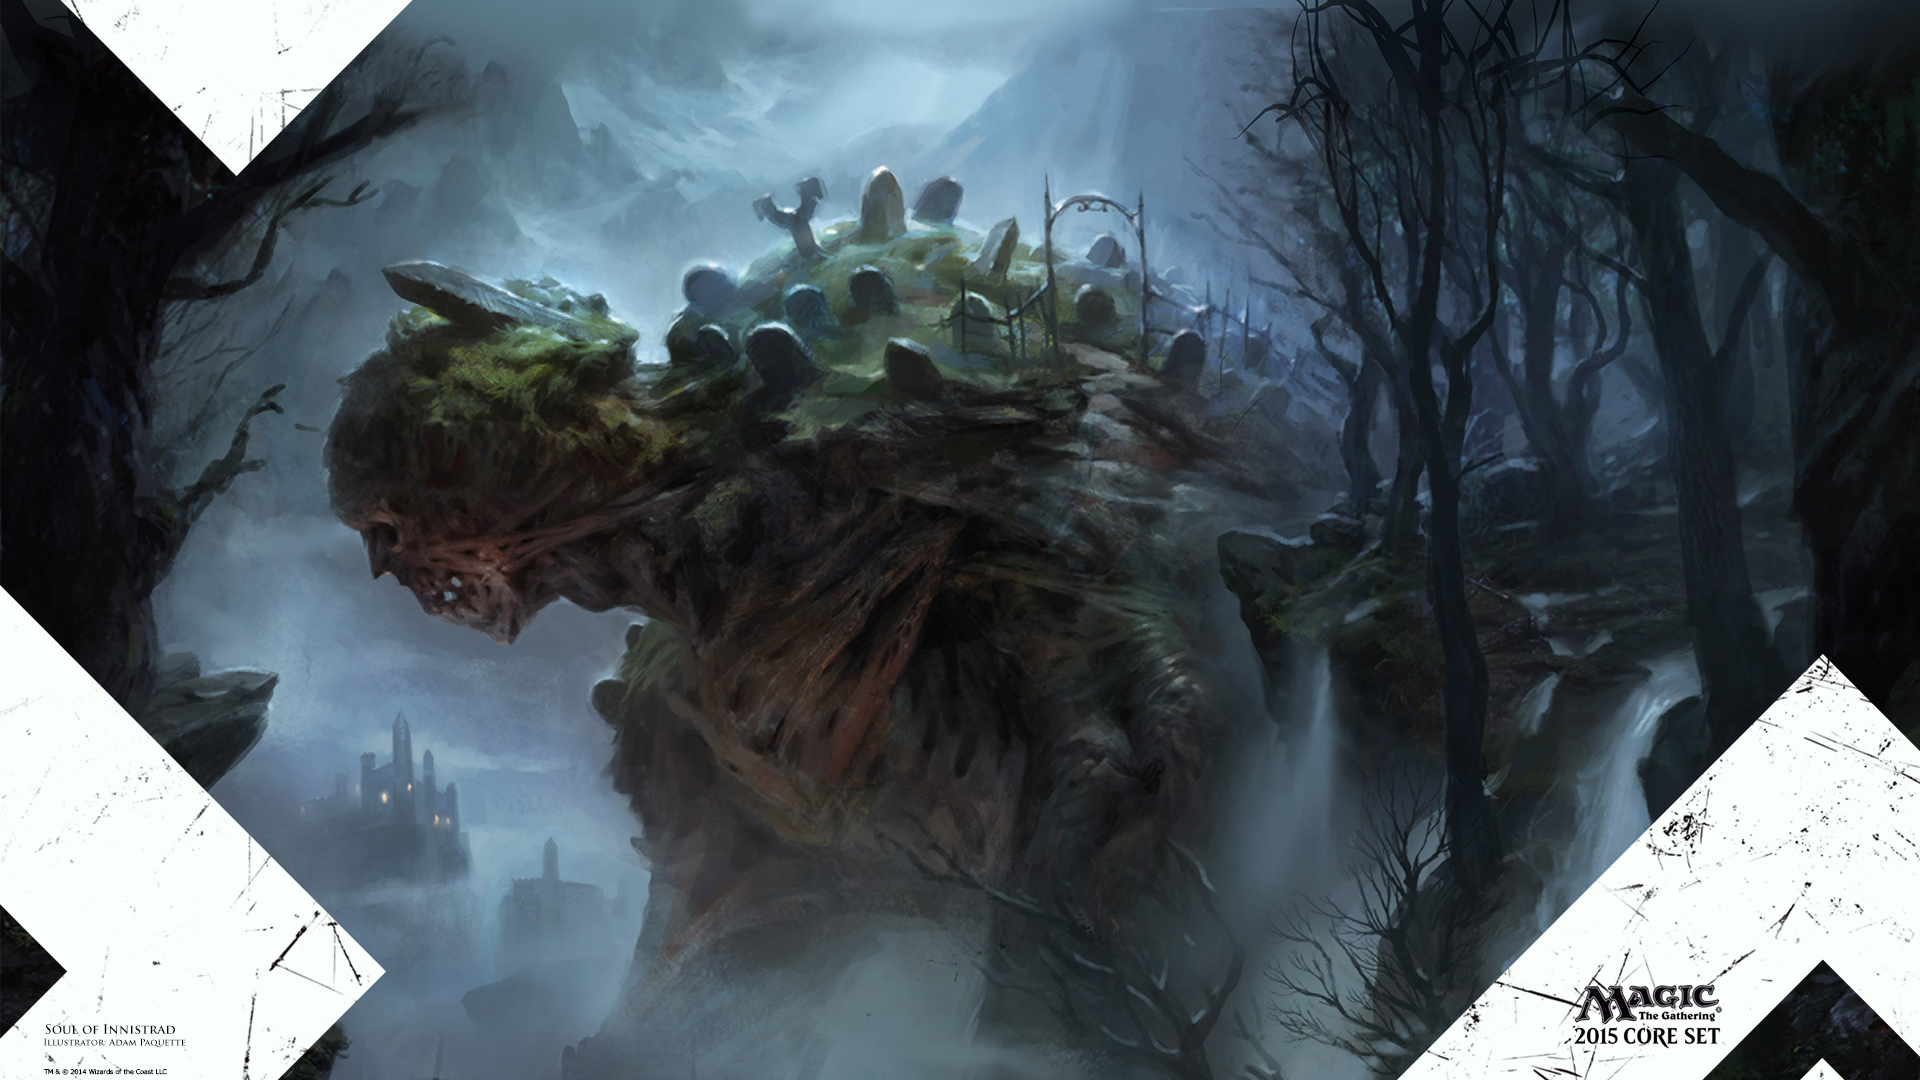 Soul of innistrad full hd wallpaper and background image - Innistrad wallpaper ...